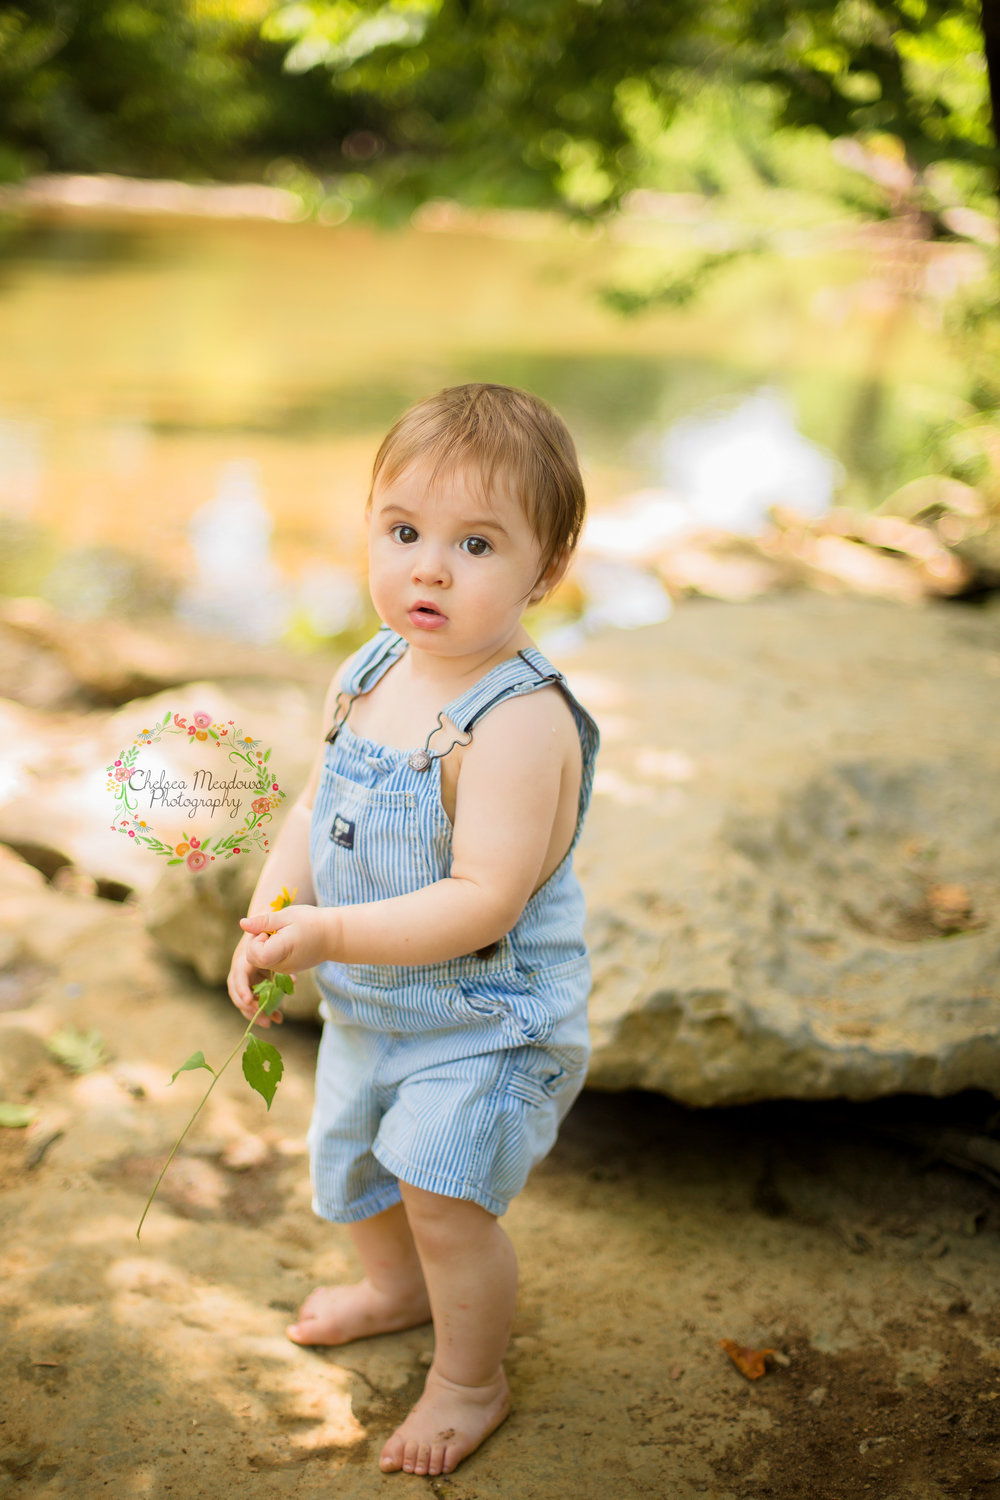 Rowans First Birthday - Nashville Family Photographer - Chelsea Meadows Photography (24).jpg